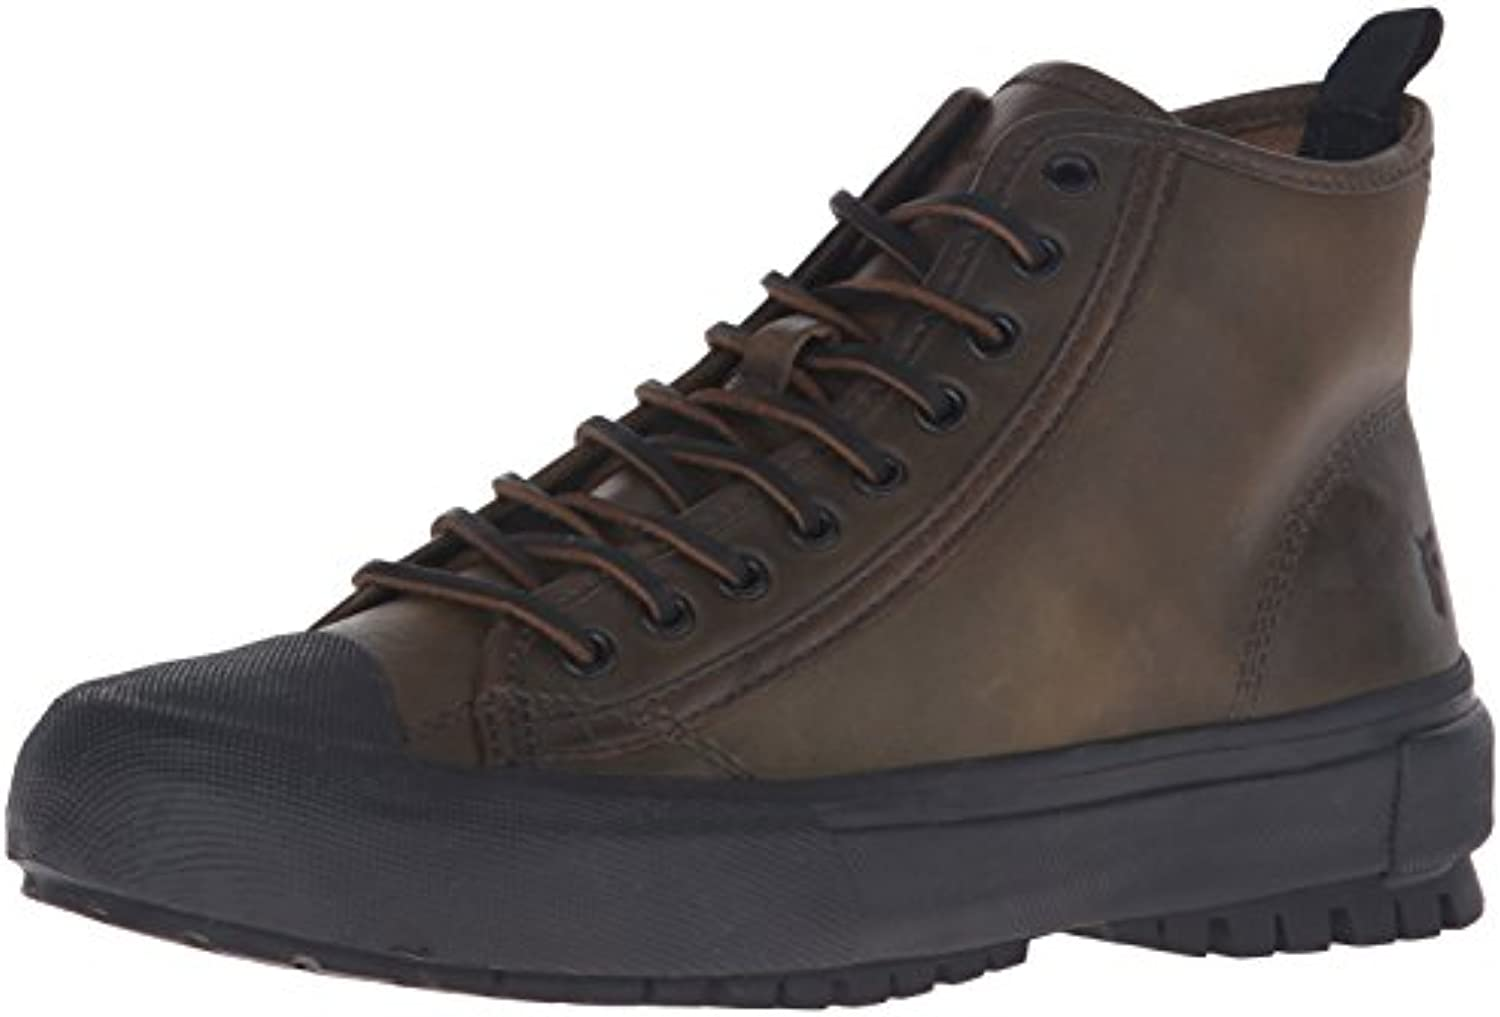 FRYE Men's Ryan Lug Midlace Fashion Sneaker